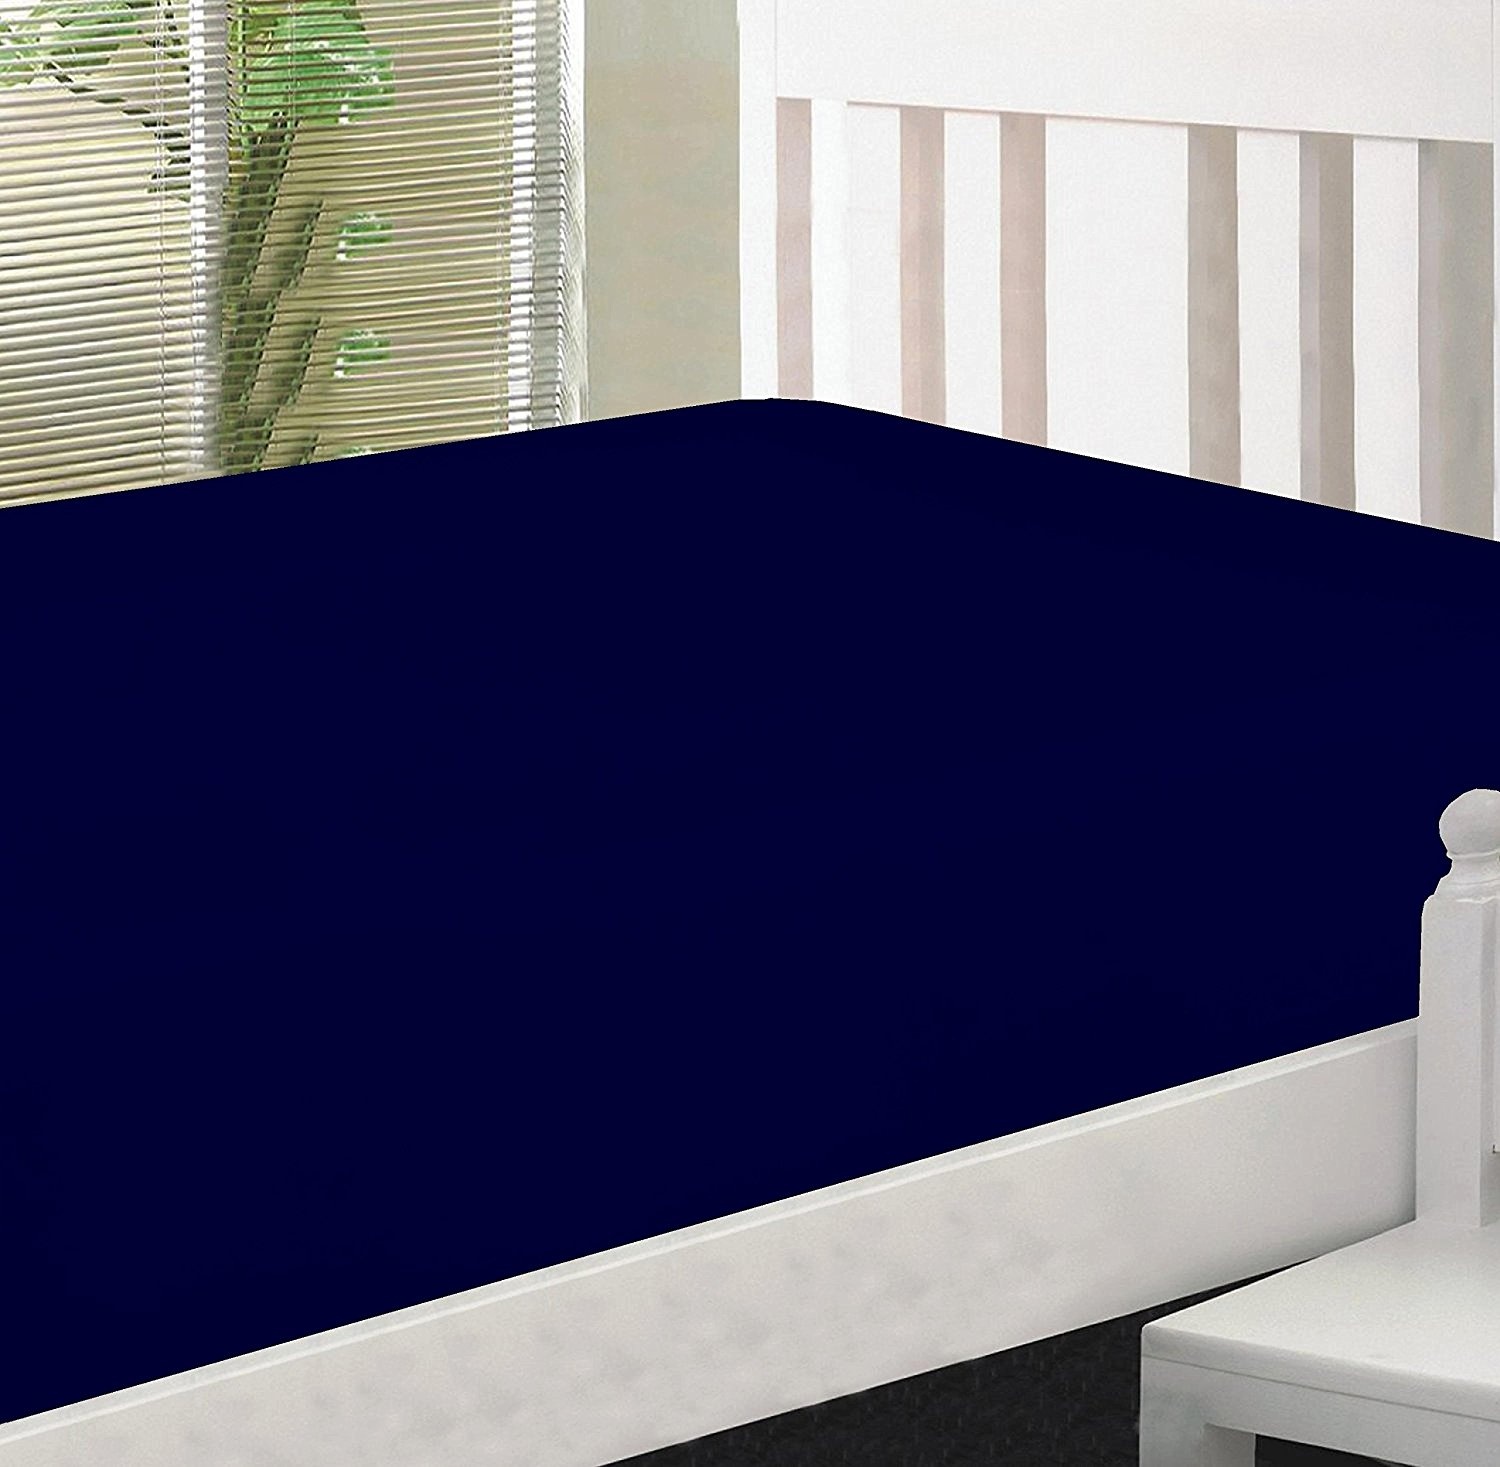 Crescent Bedding Twin Extra Long nAVY bLUE Micro Fiber Fitted sheet - Soft and Comfy - By Navy Blue Twin XL